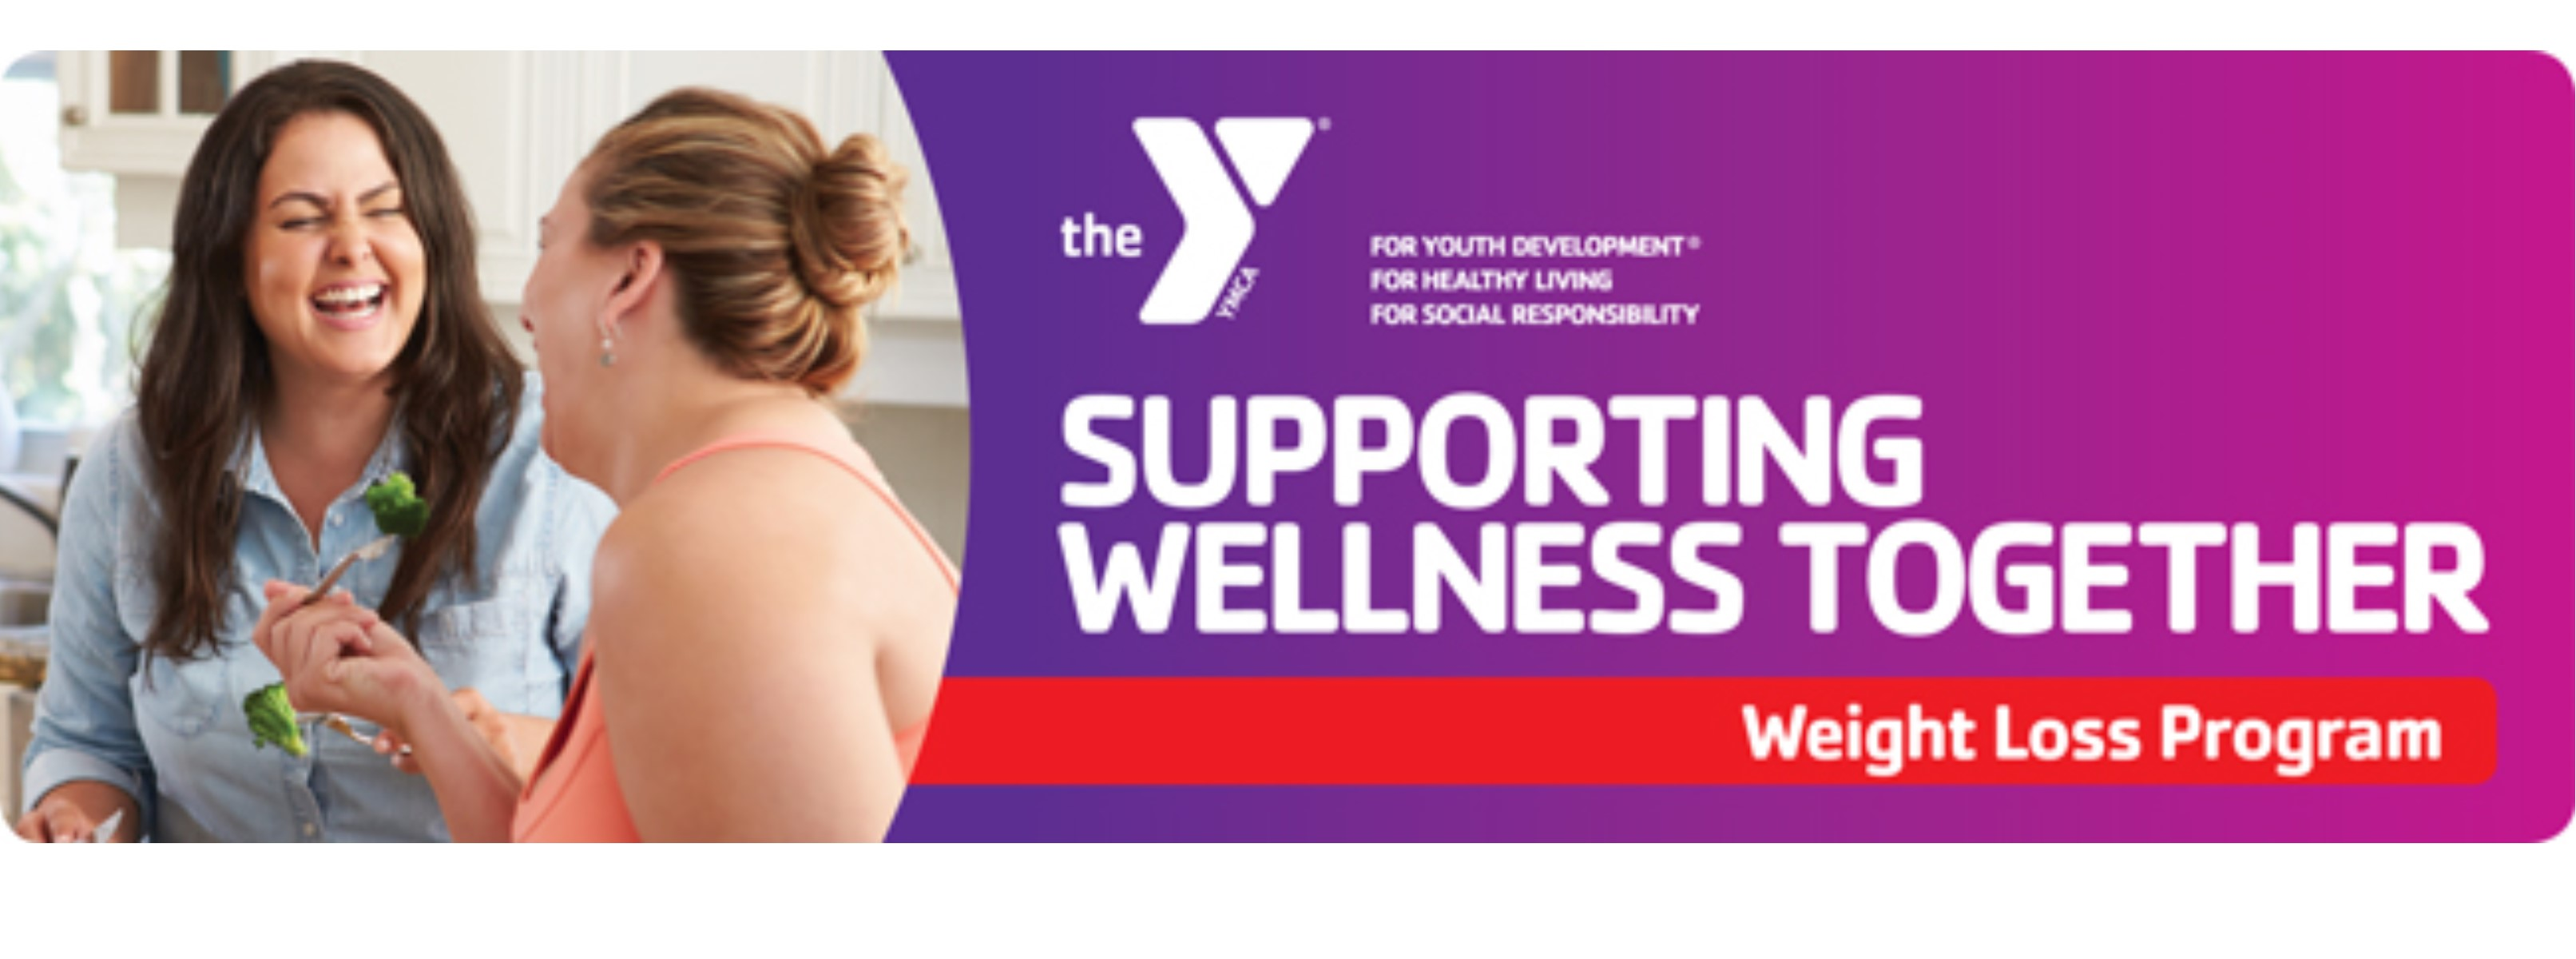 Supporting Wellness Together